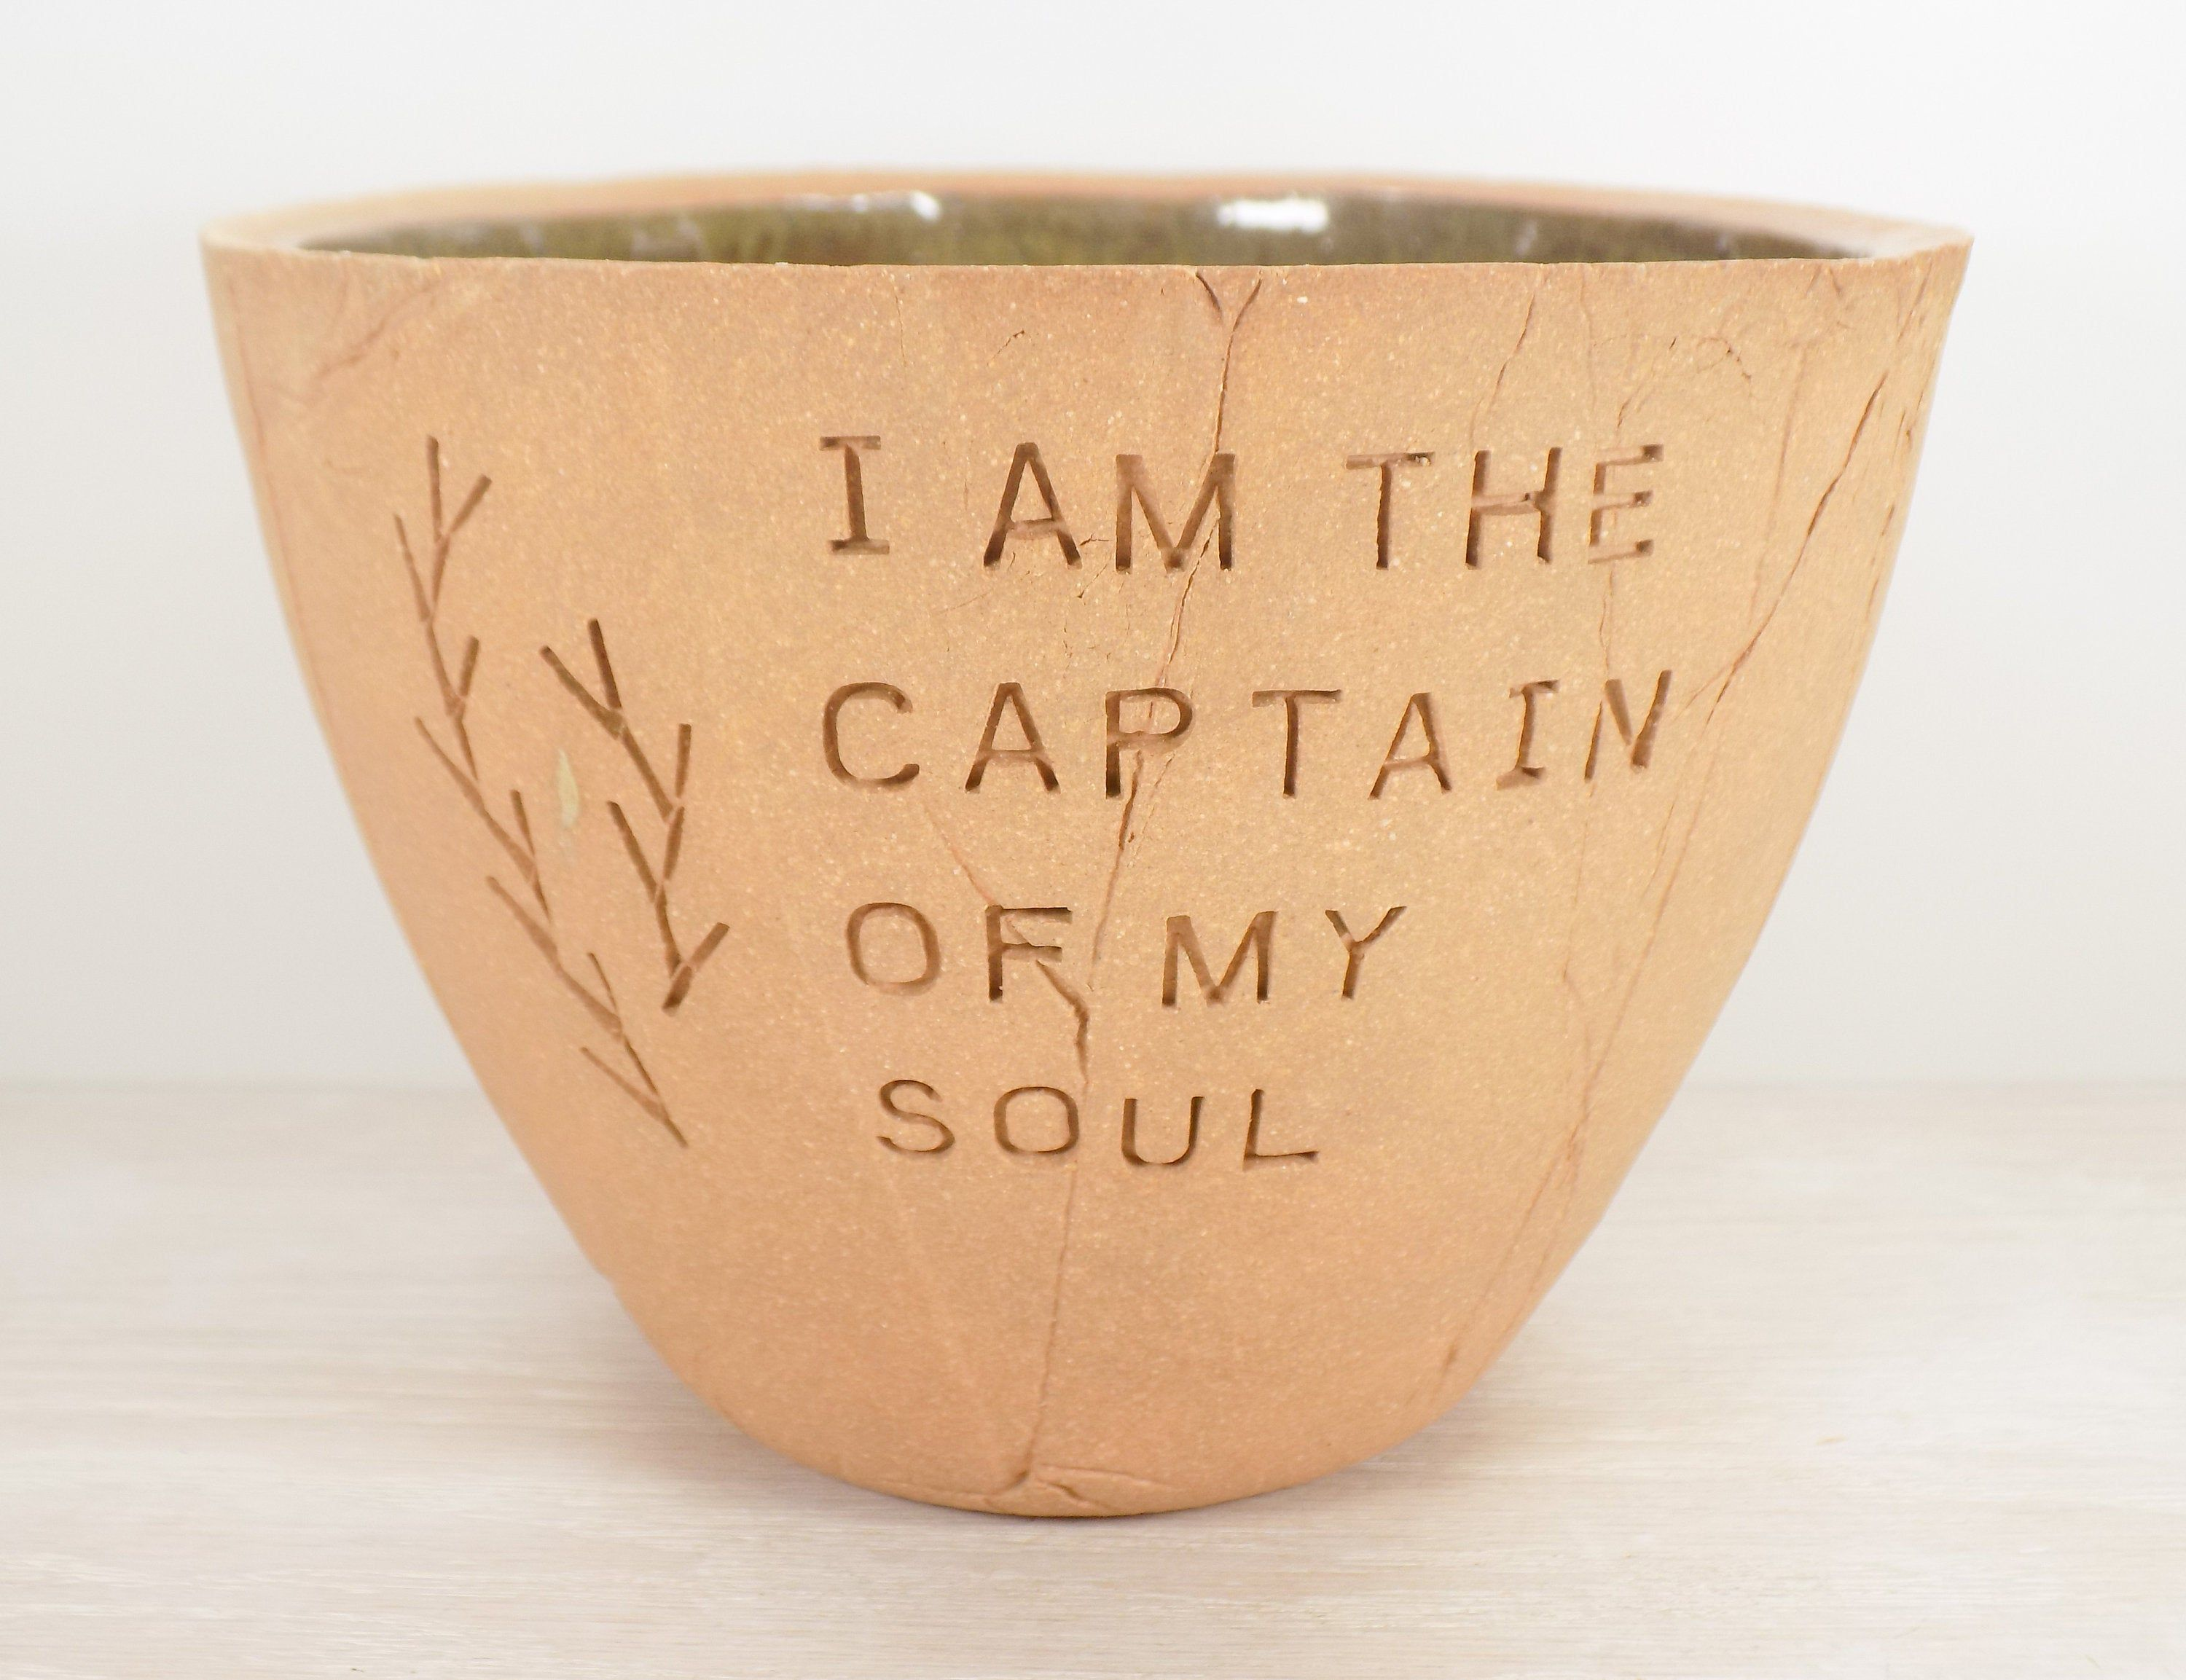 Invictus Pottery Bowl Nelson Mandela William Ernest Henley